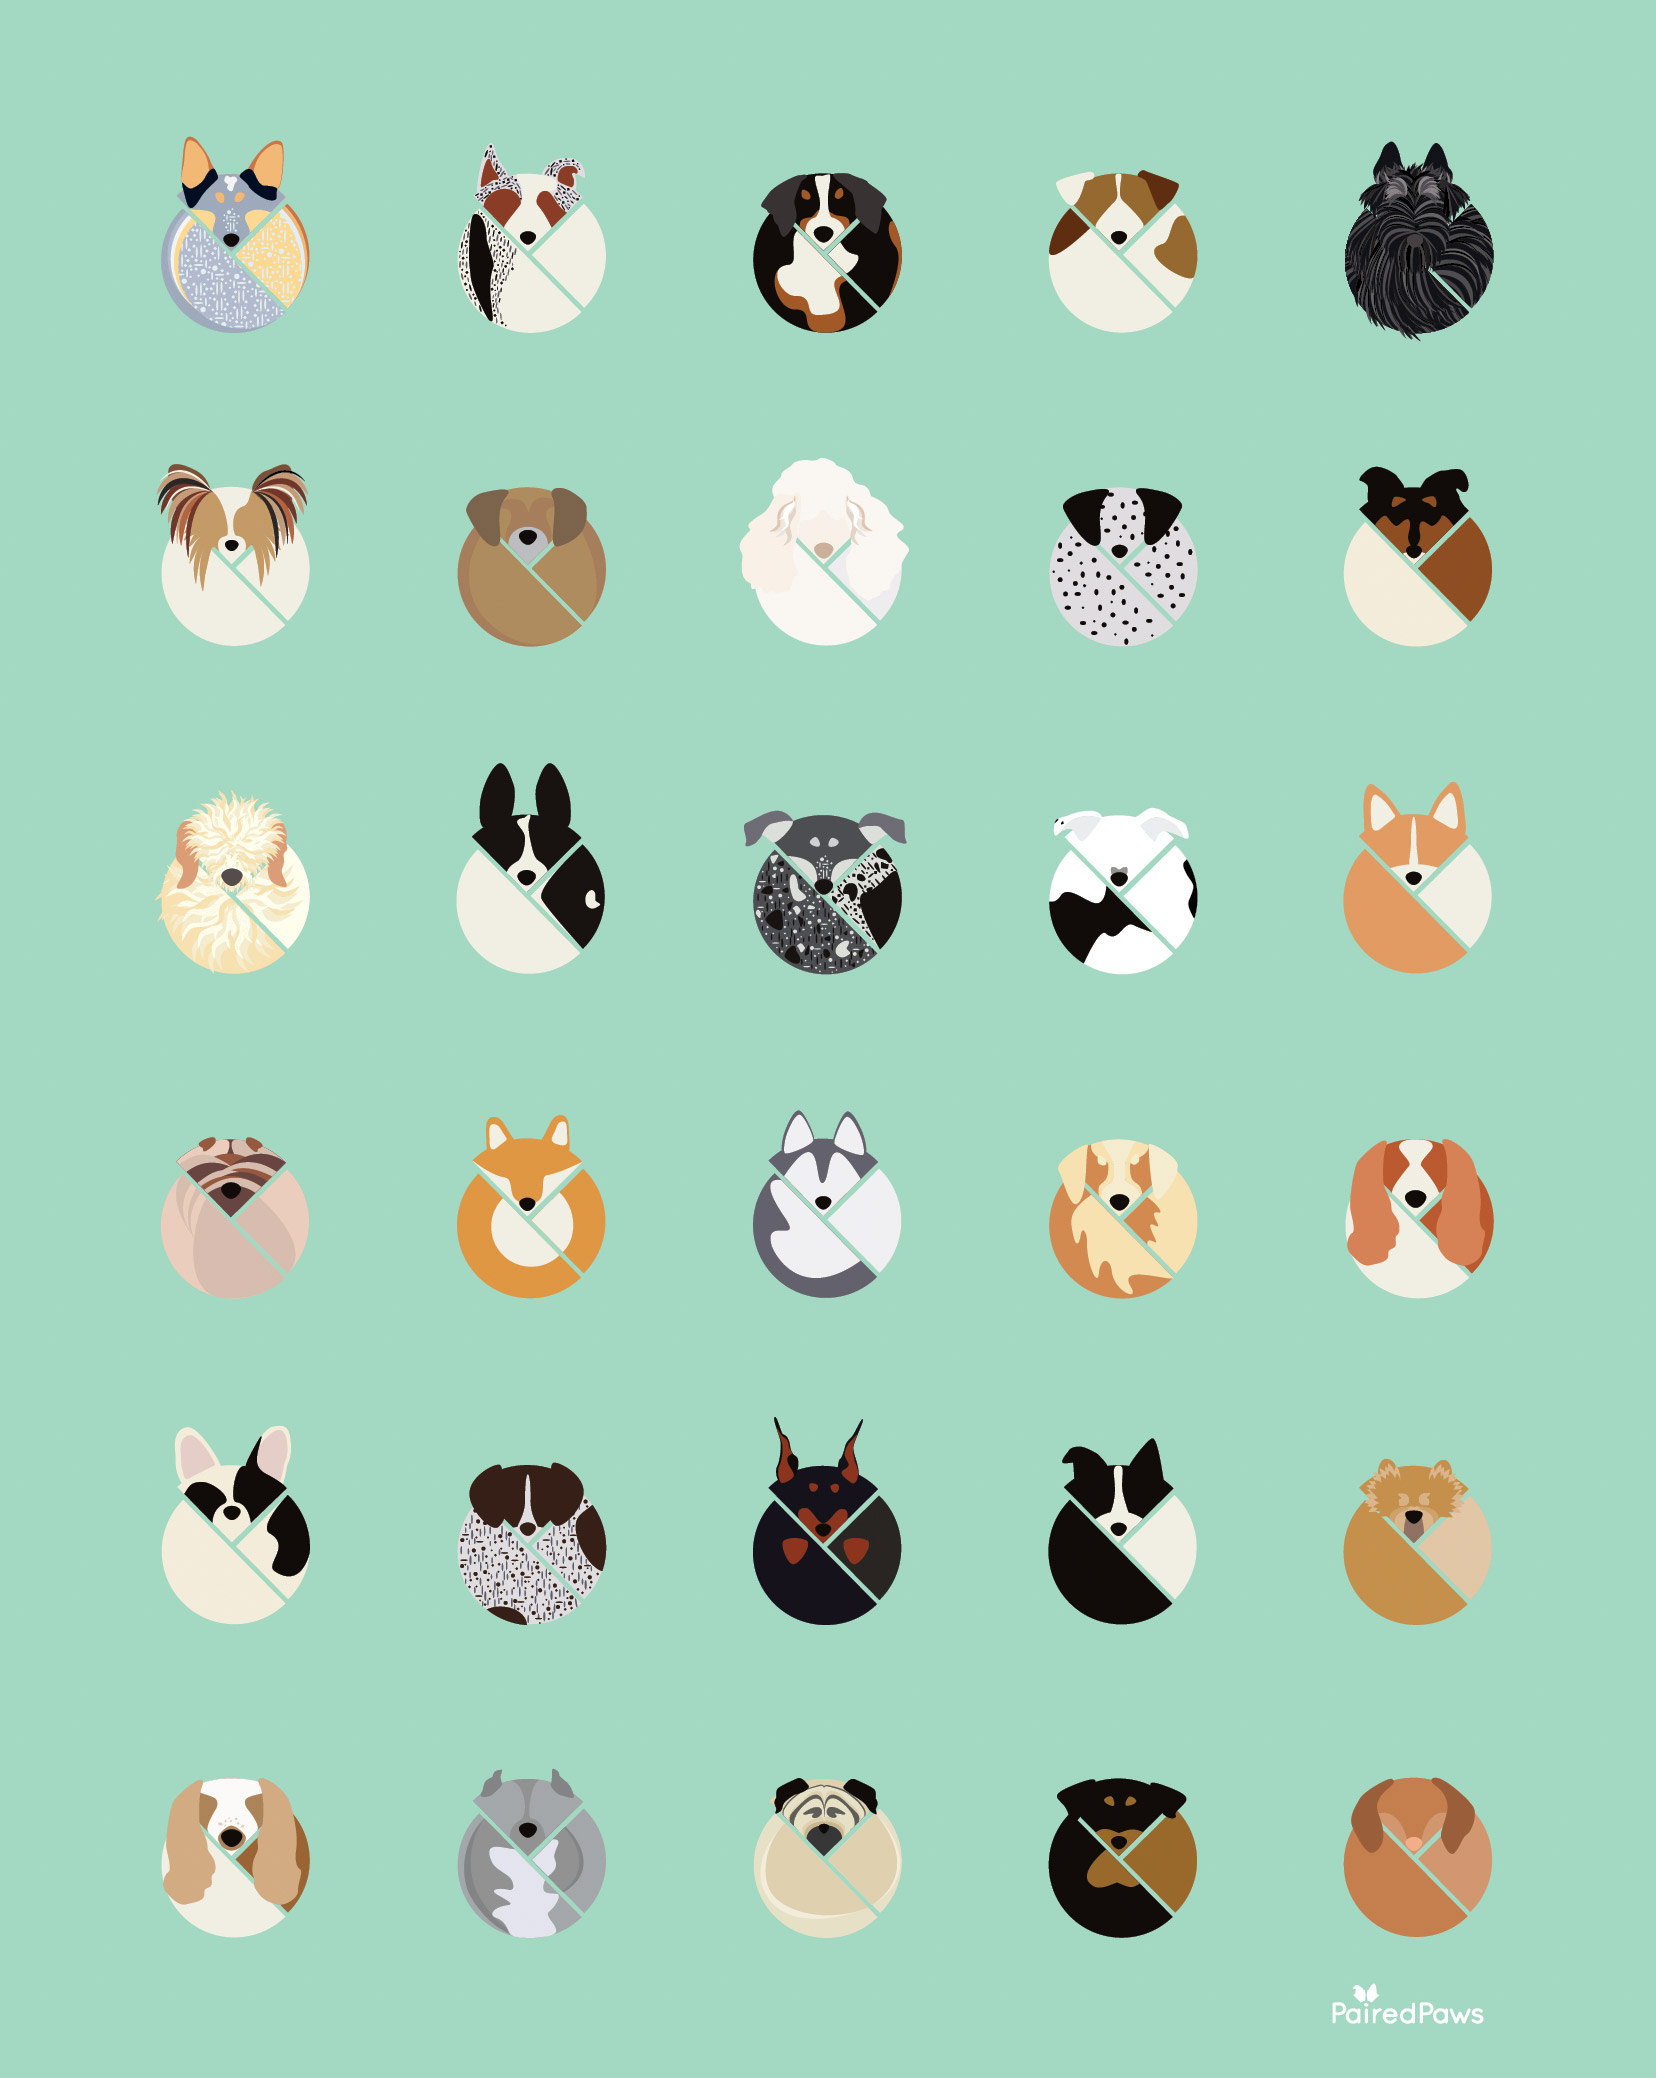 paired-paws-1.jpg